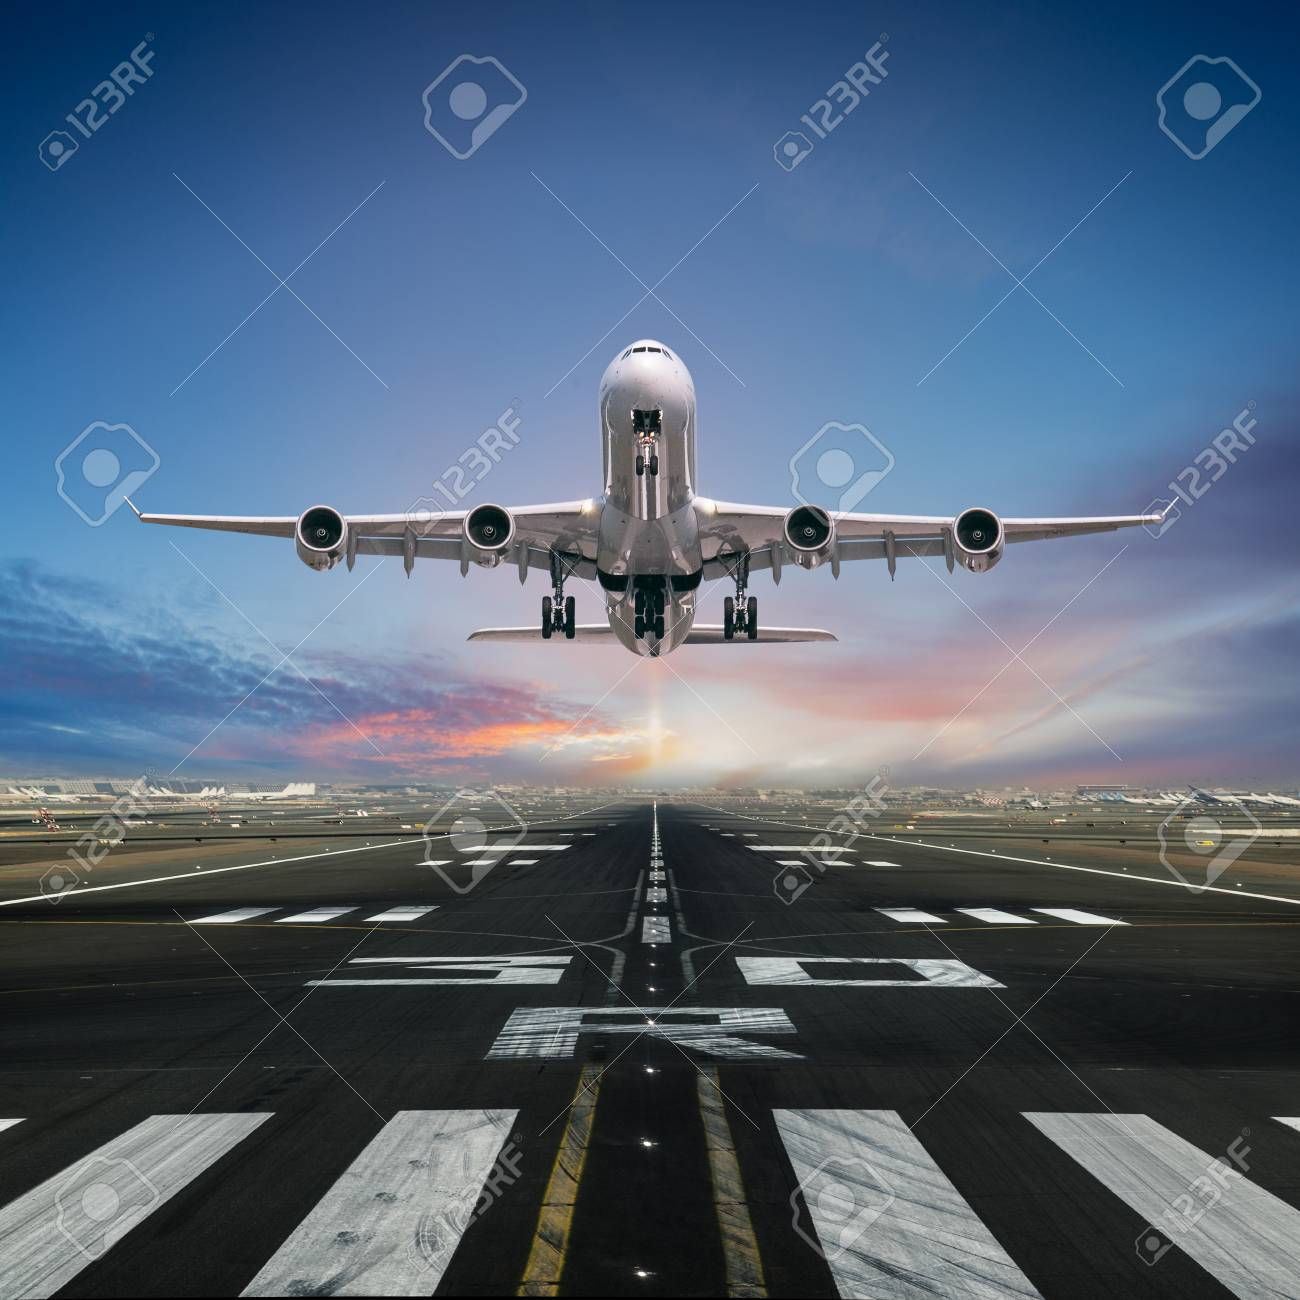 Airplane taking off from the airport. - 116469322